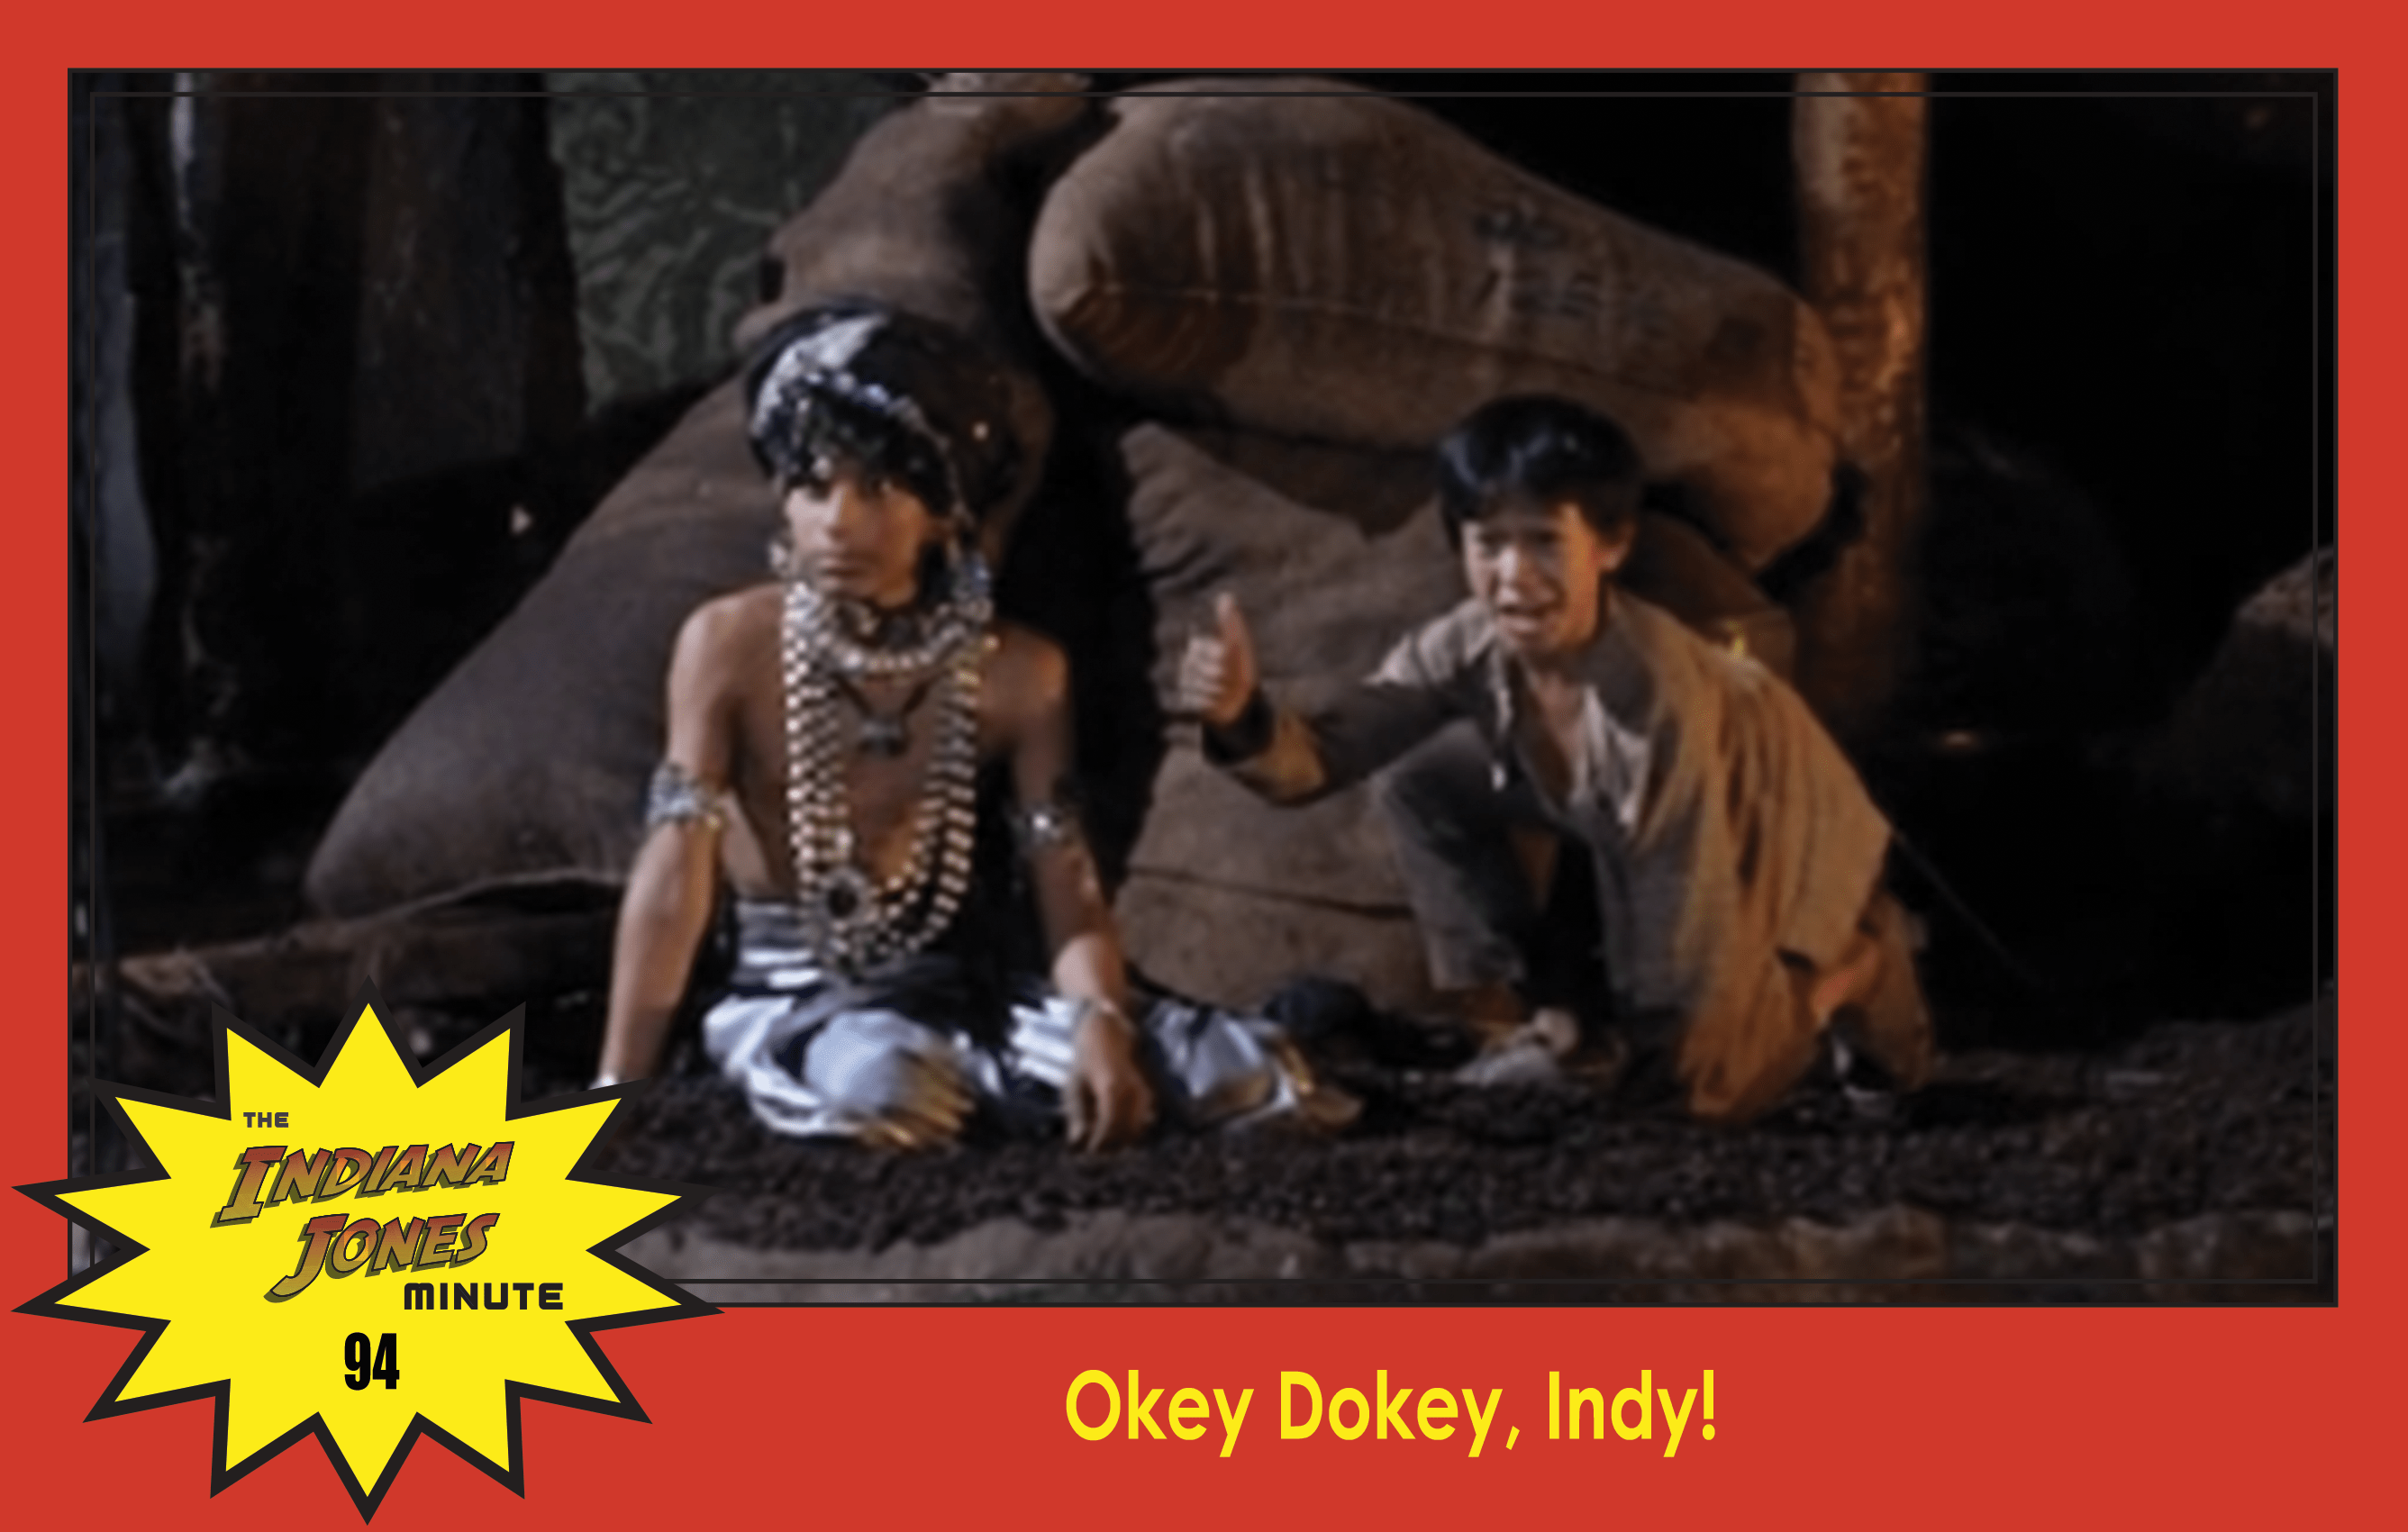 Temple of Doom Minute 94: Okey Dokey, Indy!